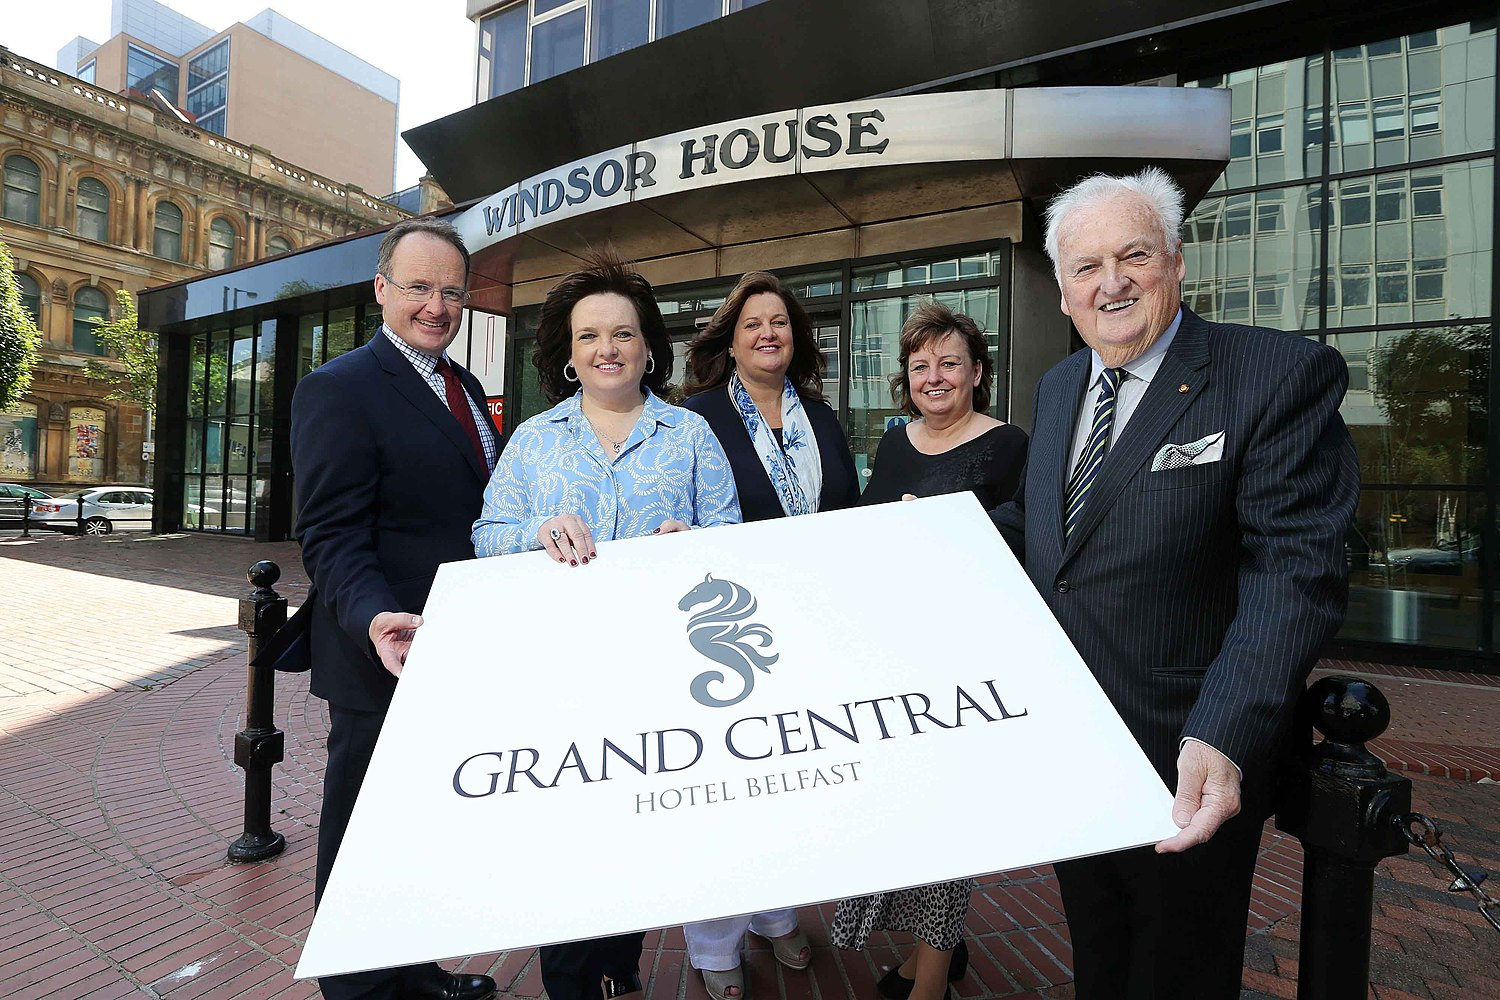 Introducing The Grand Central Hotel Belfast